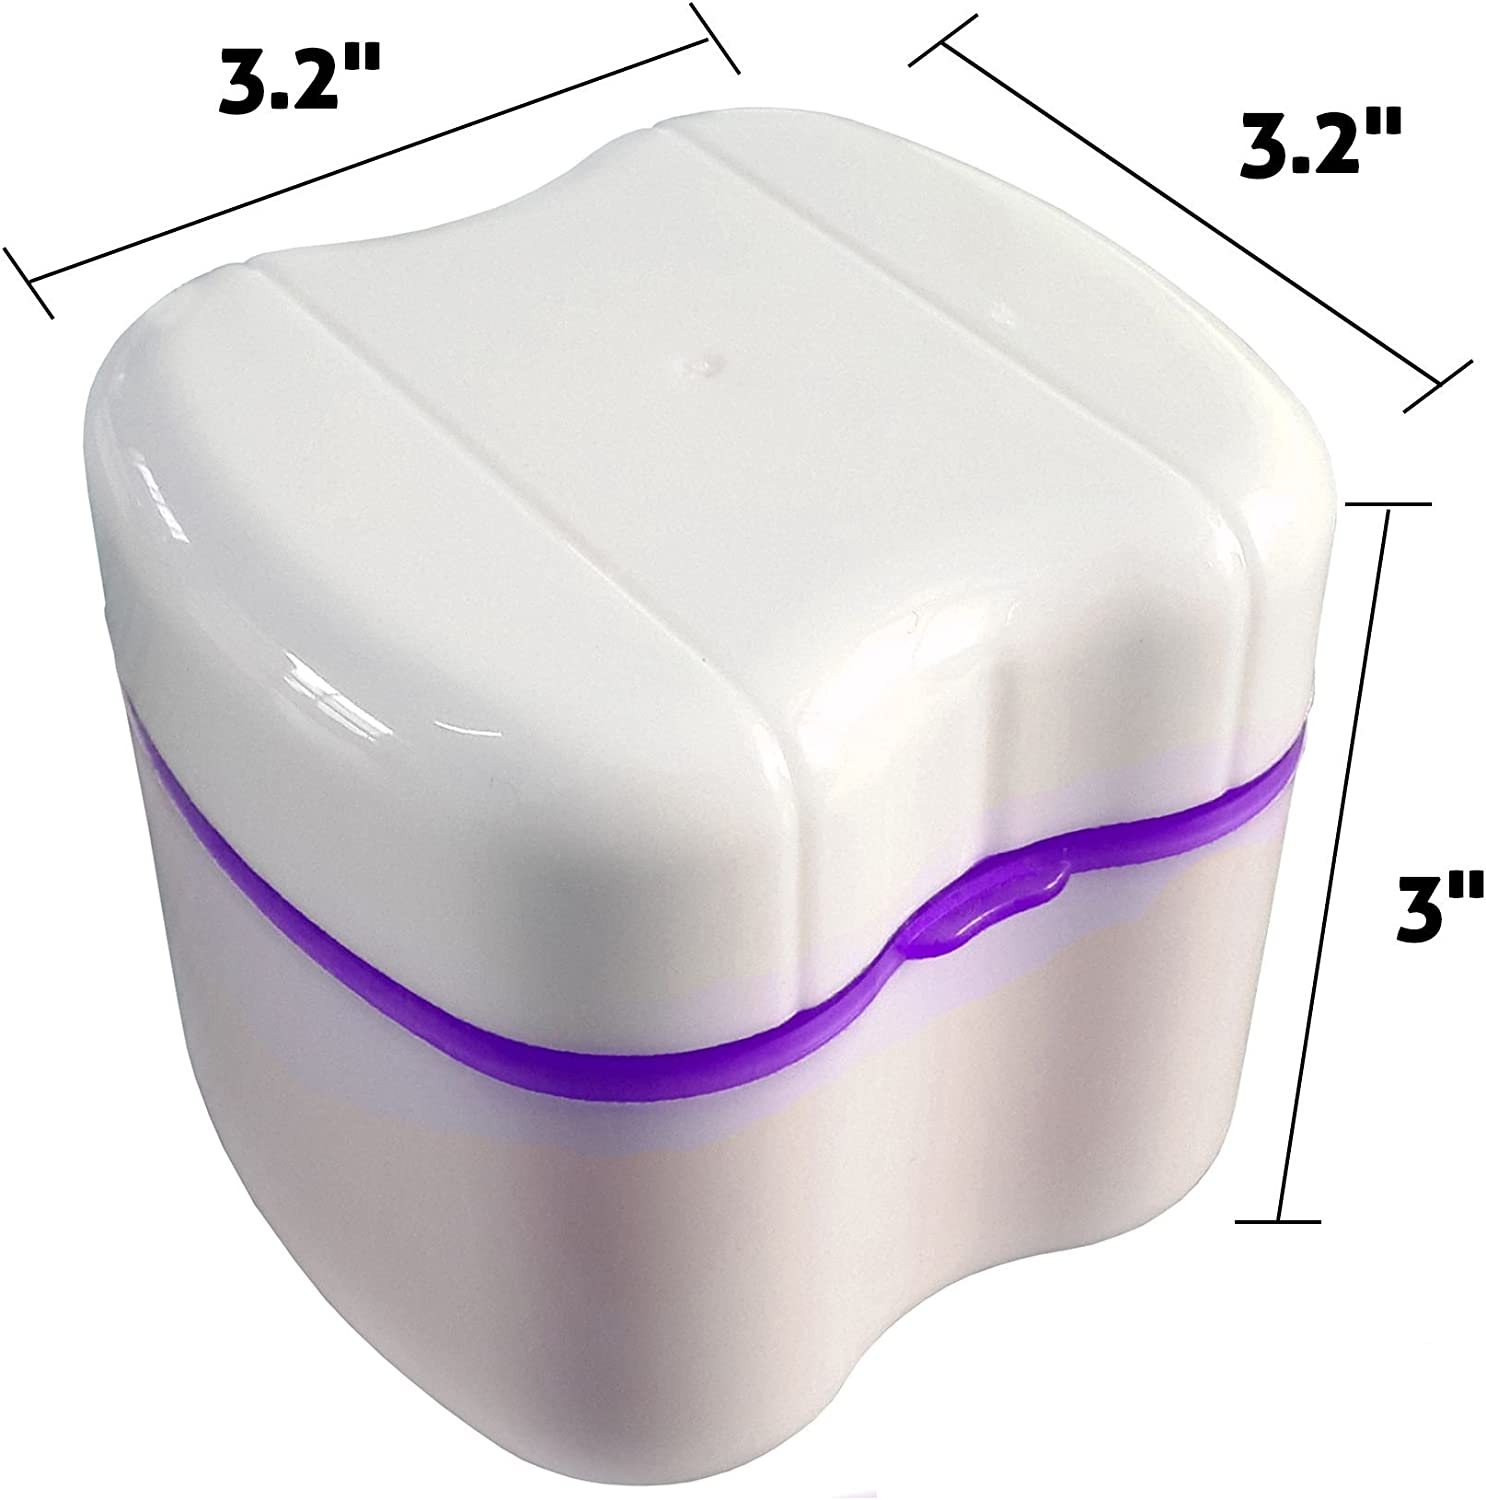 Gus Craft Lavender Purple Denture Box with Simple Retrieval Tab, Great for Dental Care, Easy to Open, Store and Retrieve (Lavender Purple): Home & Kitchen